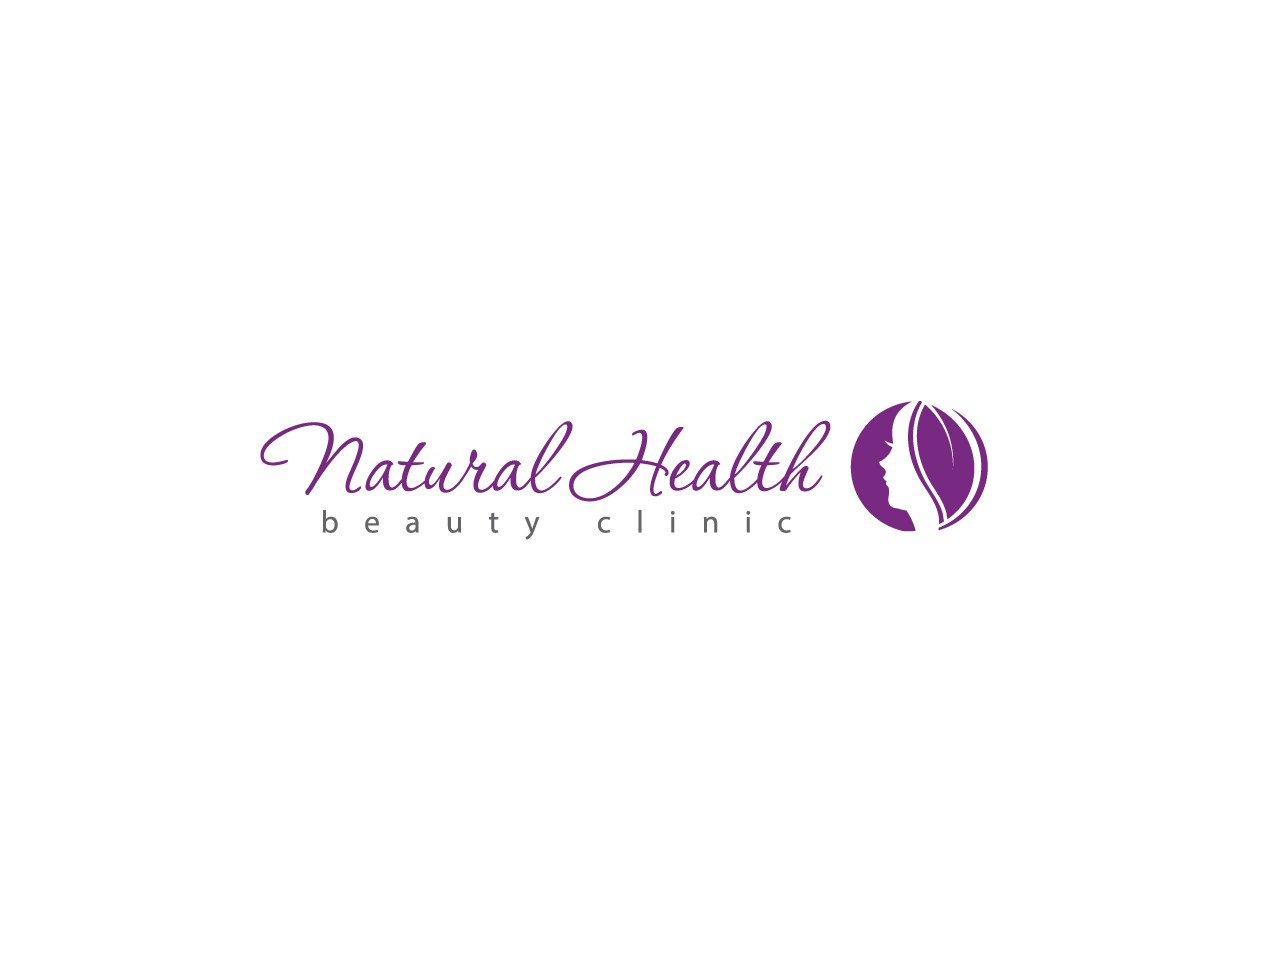 Help  Natural Health and Beauty Clinic create a sophisticated yet modern Logo!